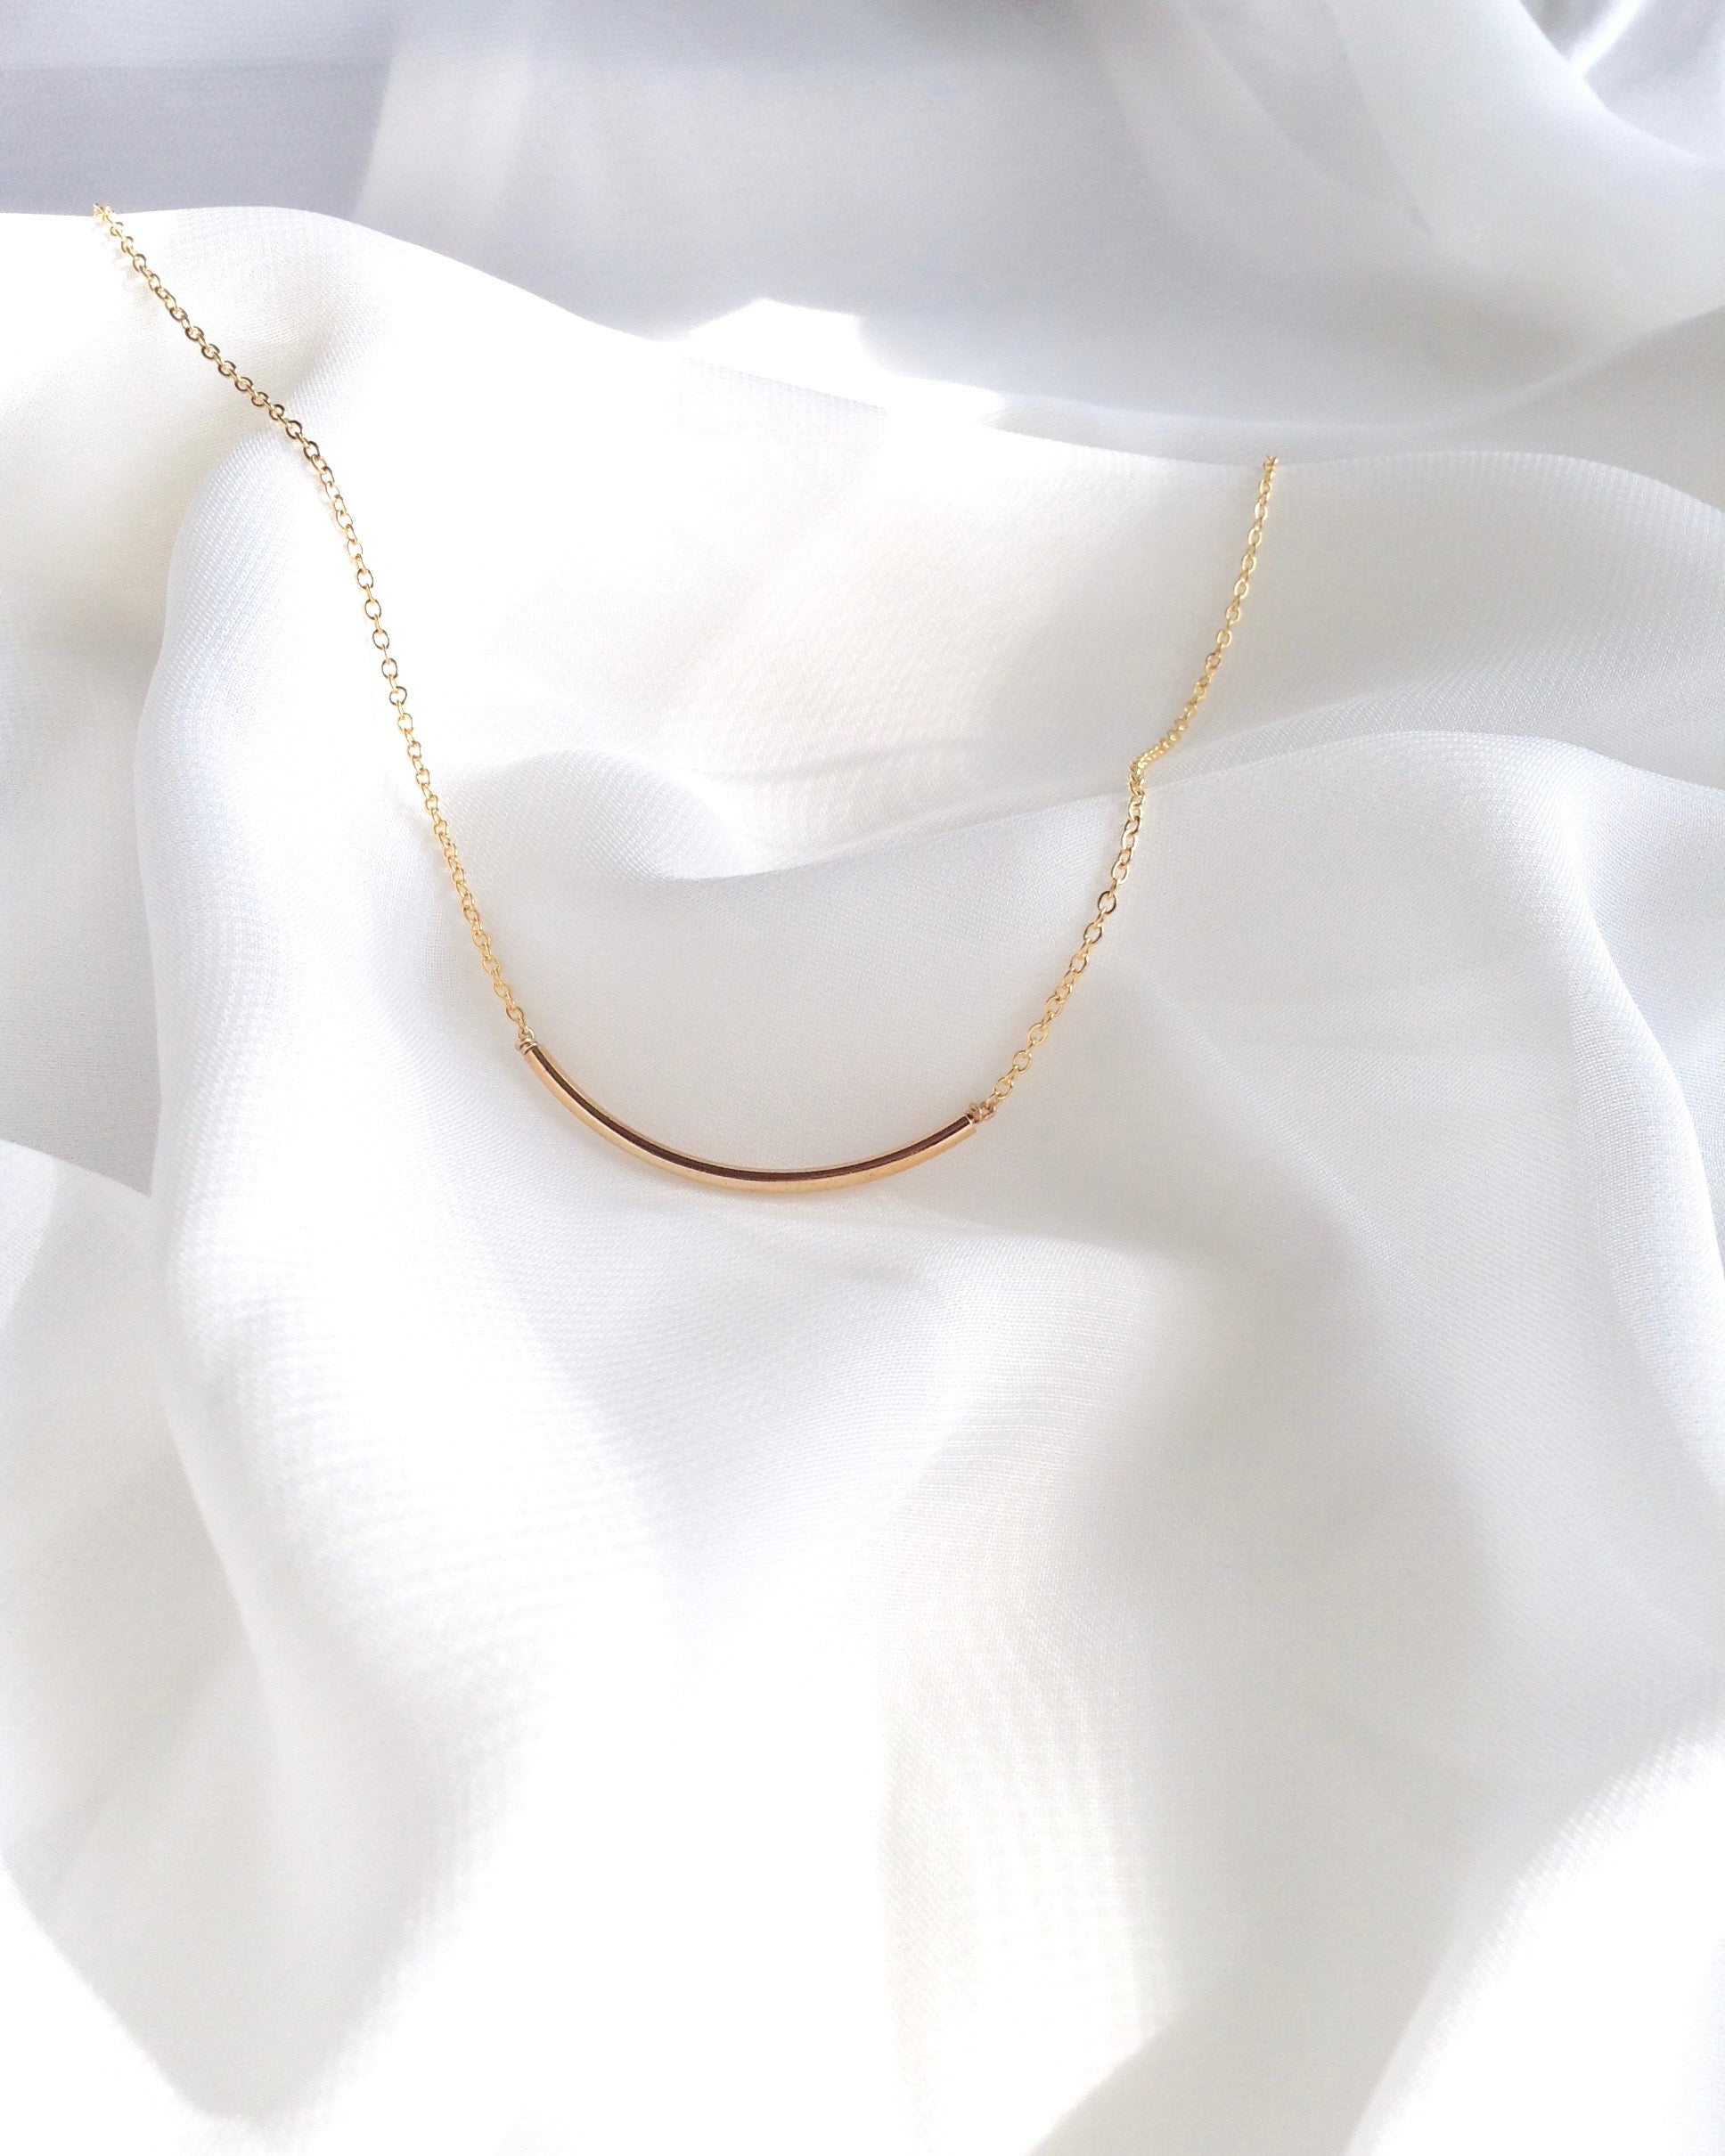 Curved Bar Minimalist Everyday Necklace | IB Jewelry